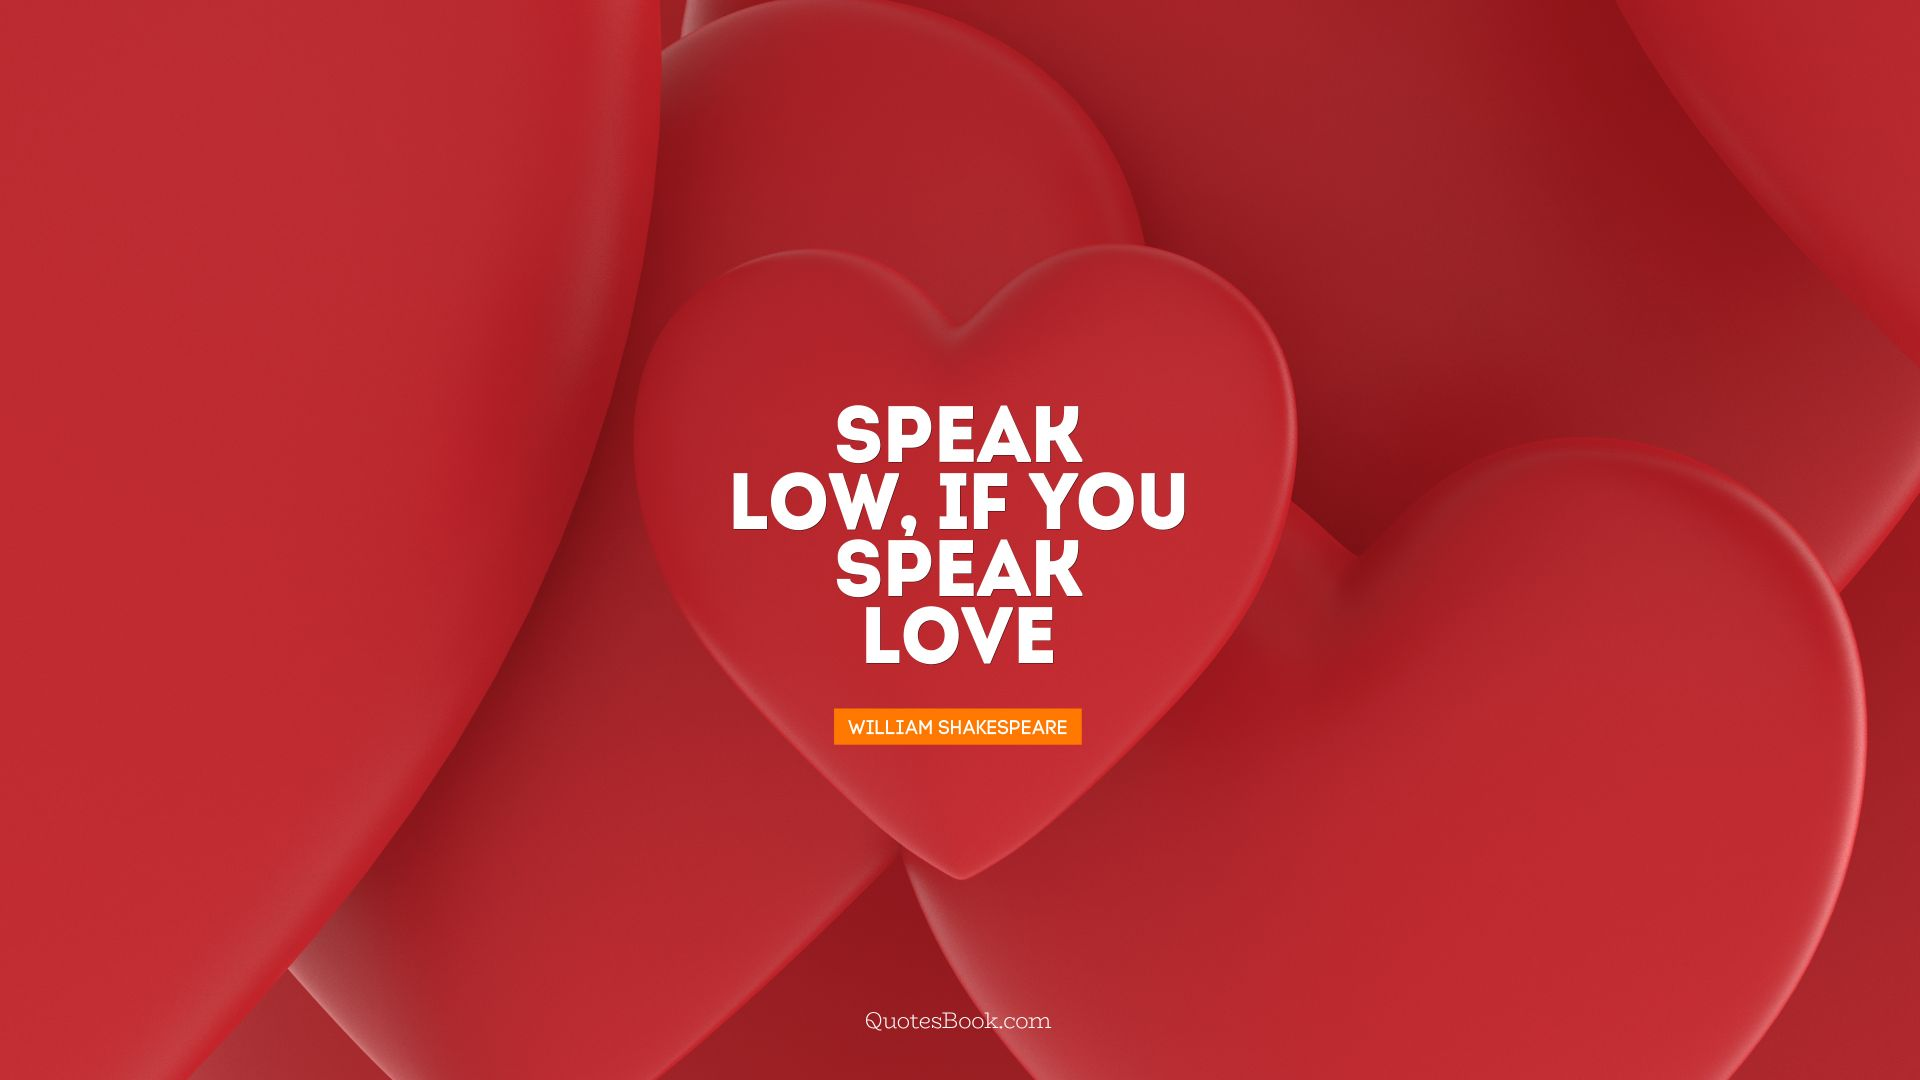 Speak low, if you speak love. - Quote by William Shakespeare